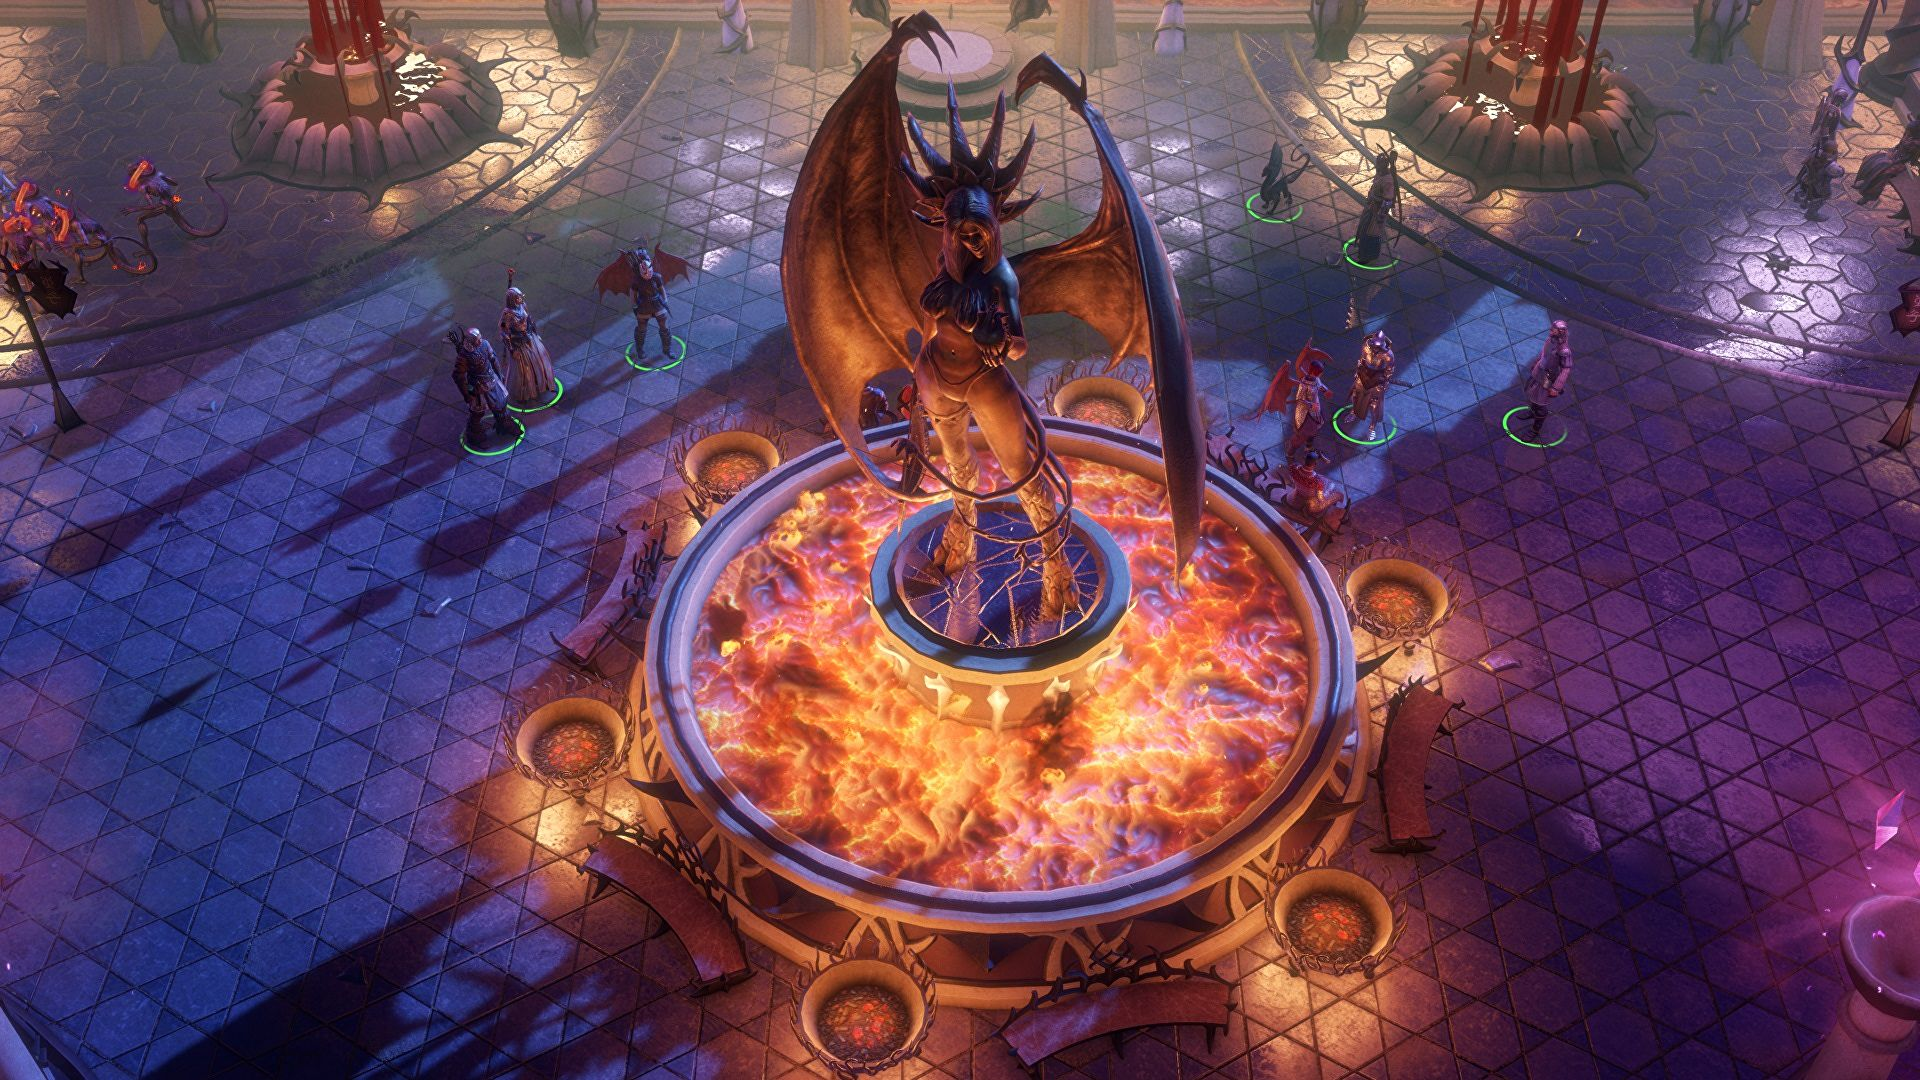 Pathfinder: Wrath of the Righteous Developer Diary